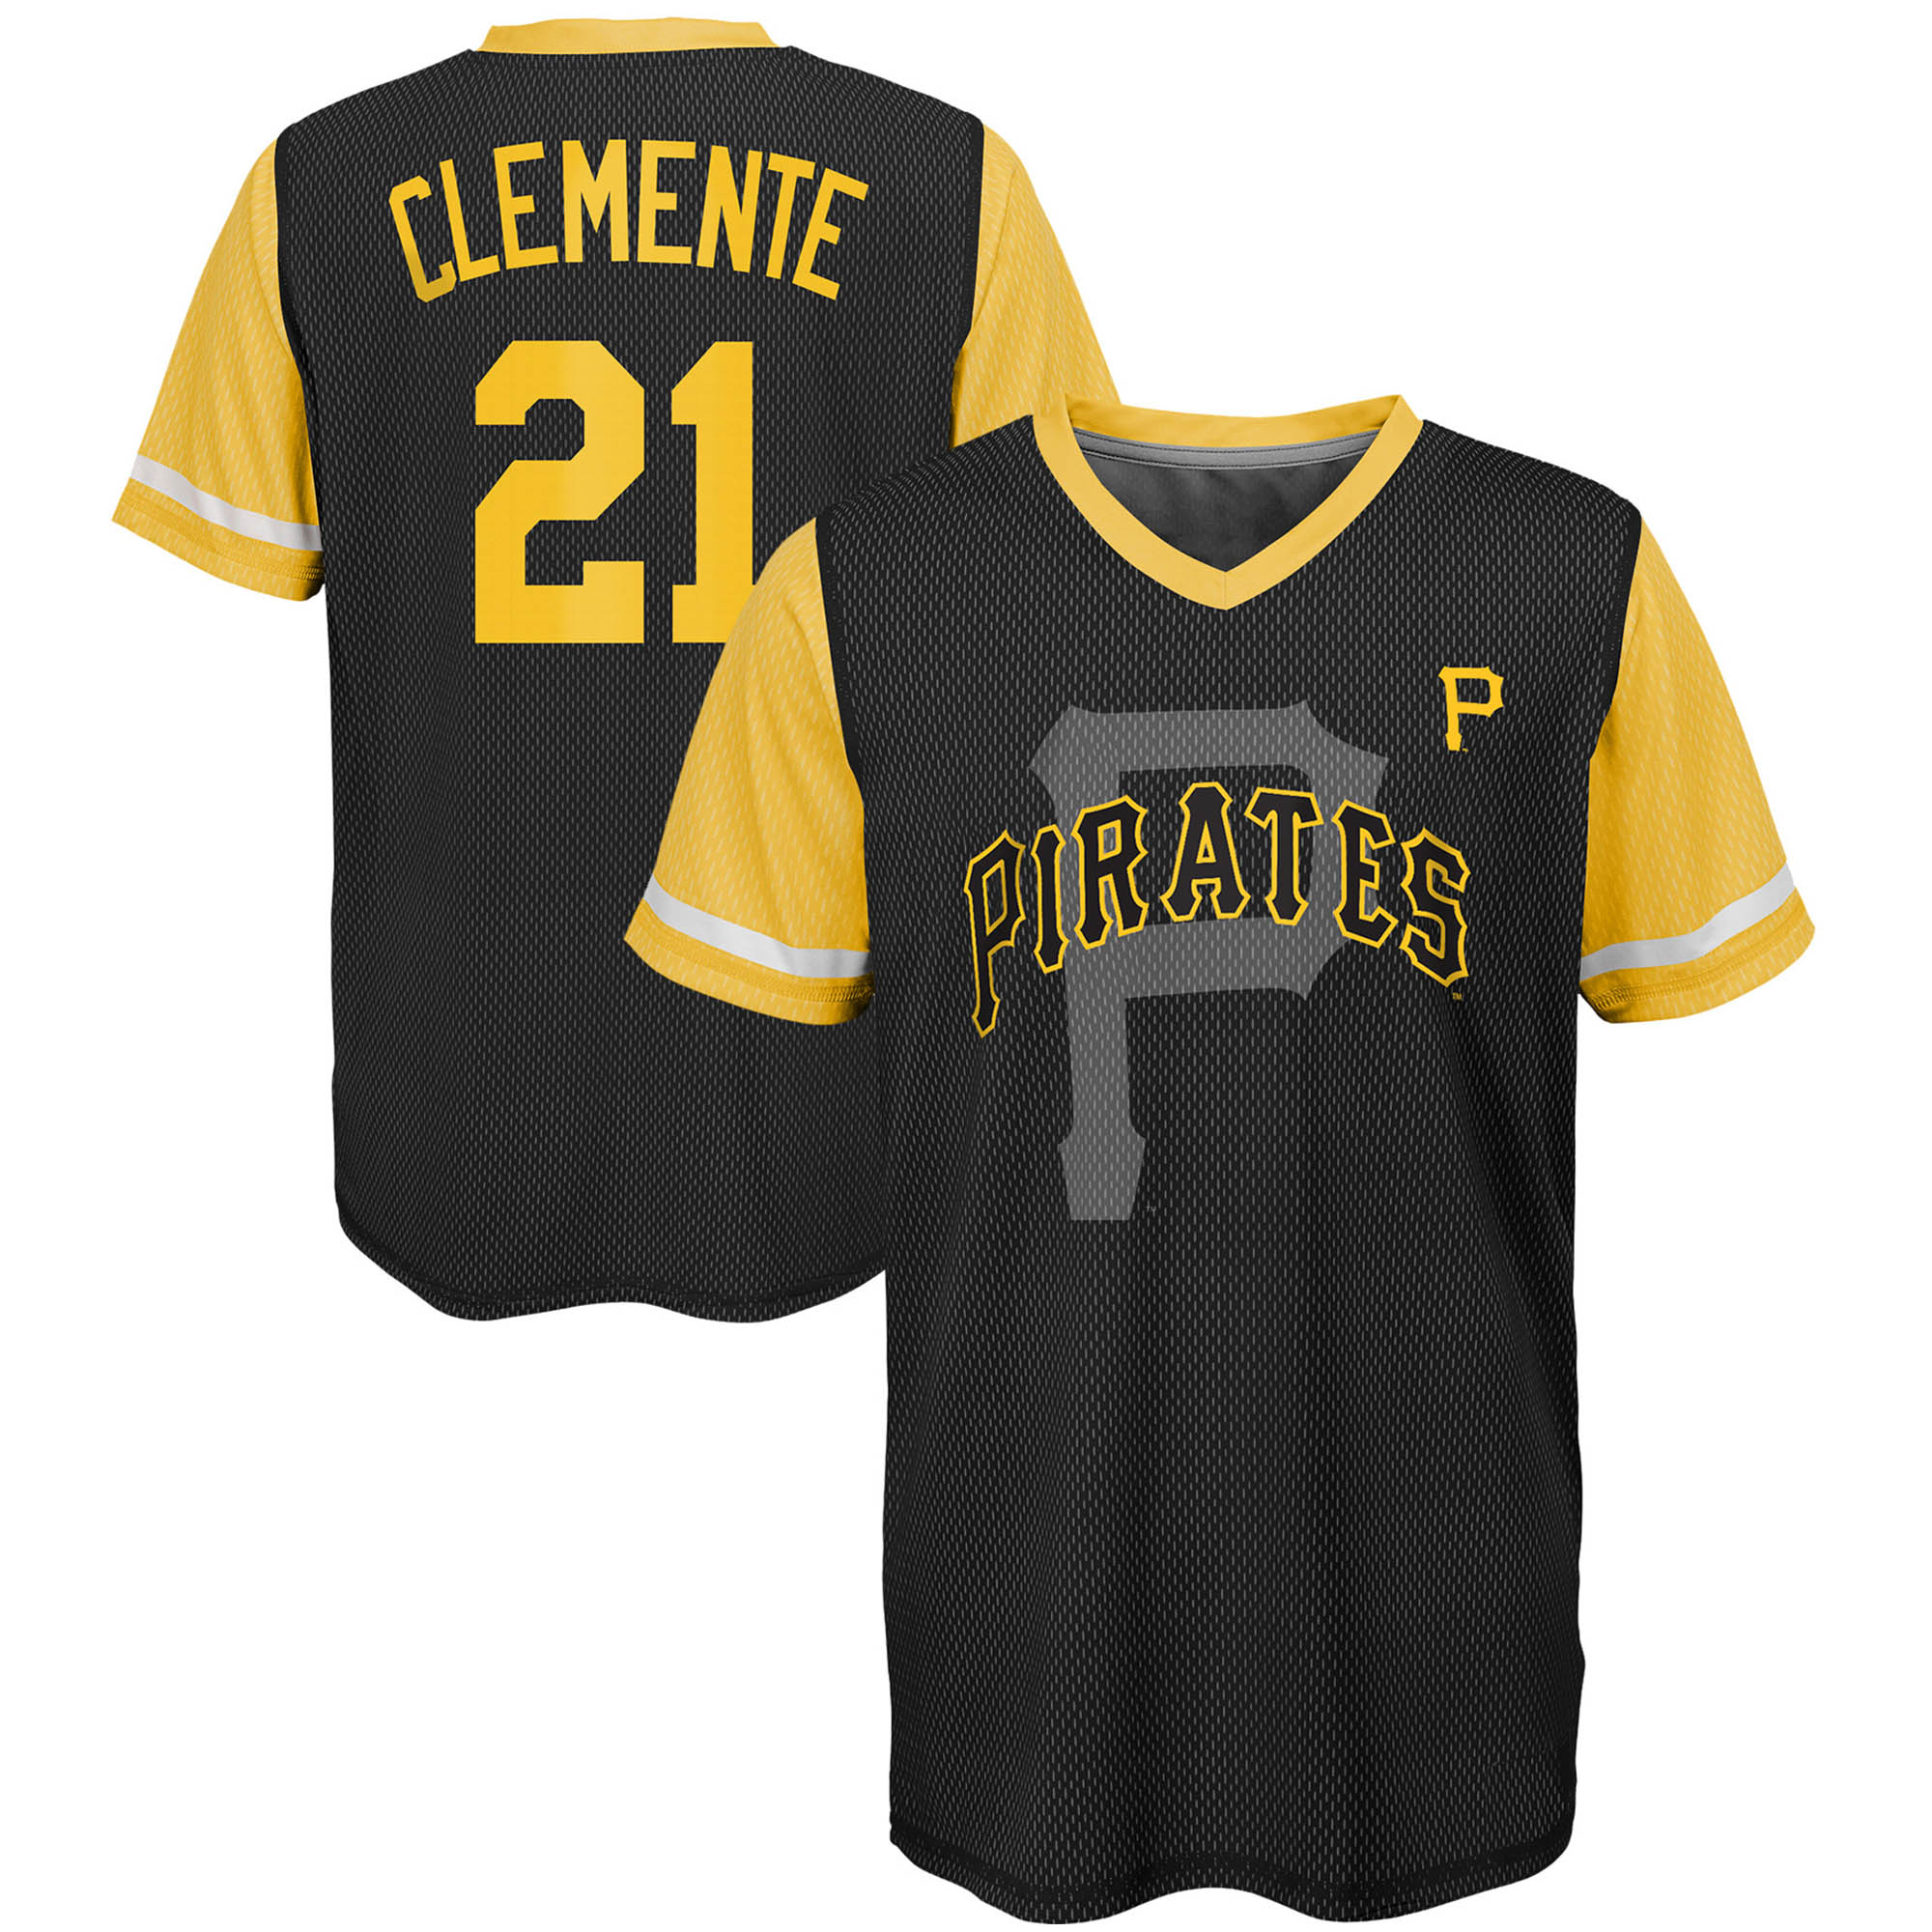 Roberto Clemente Pittsburgh Pirates Majestic Youth Cooperstown Collection Play Hard Player V-Neck Jersey T-Shirt - Black/Gold